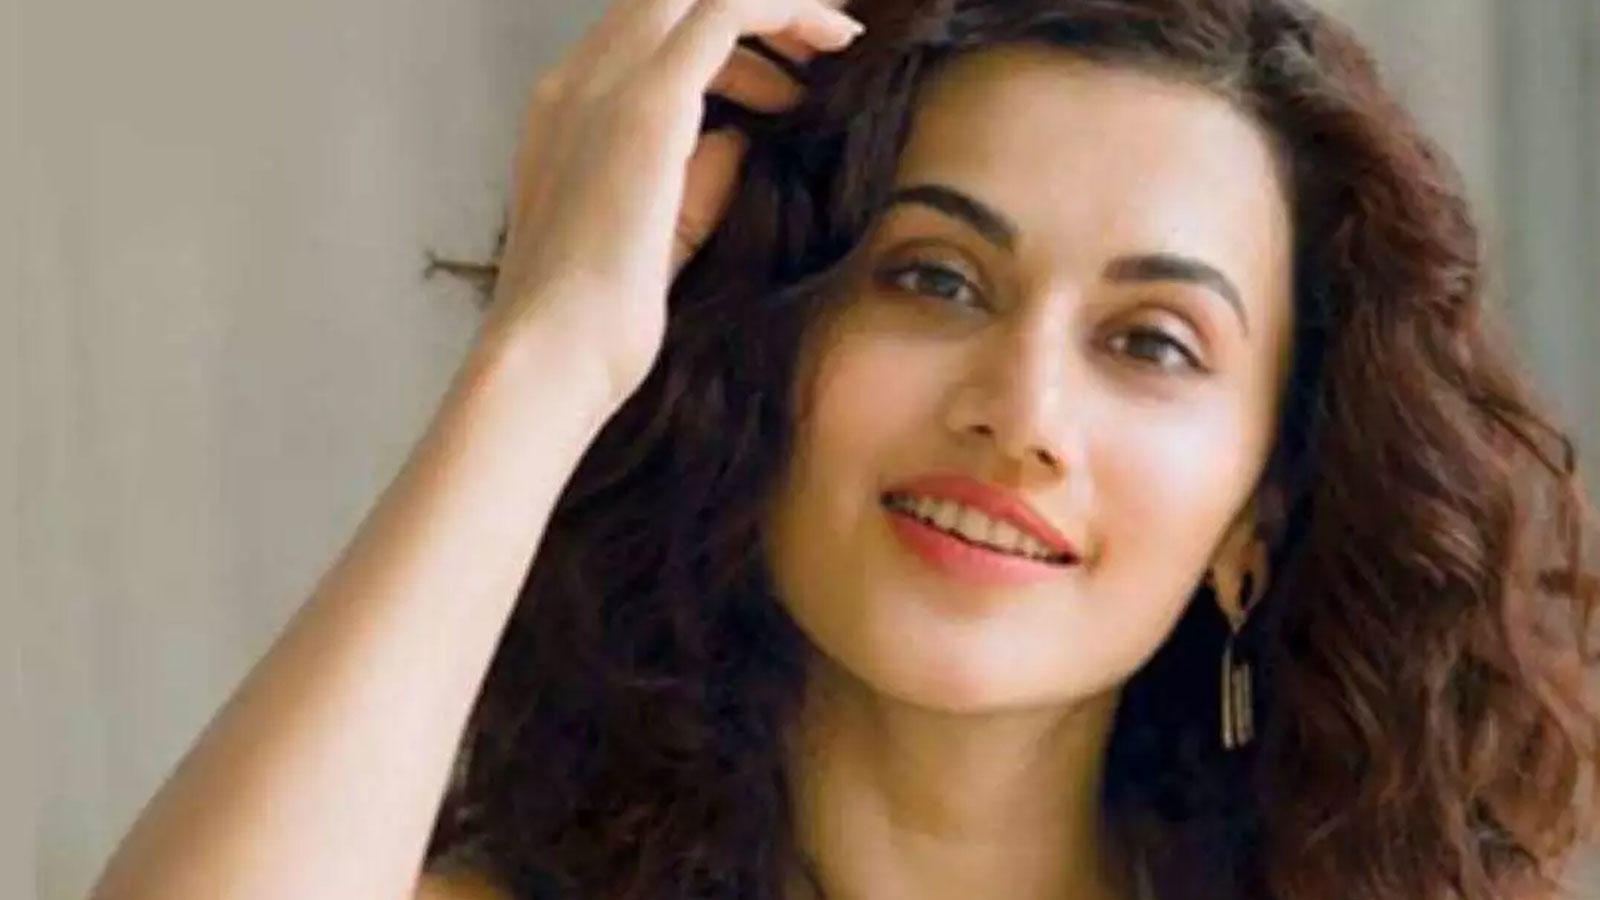 'Don't crowd my timeline with your nonsense': Taapsee Pannu aptly shuts down a troll | Hindi Movie News – Bollywood – Times of India